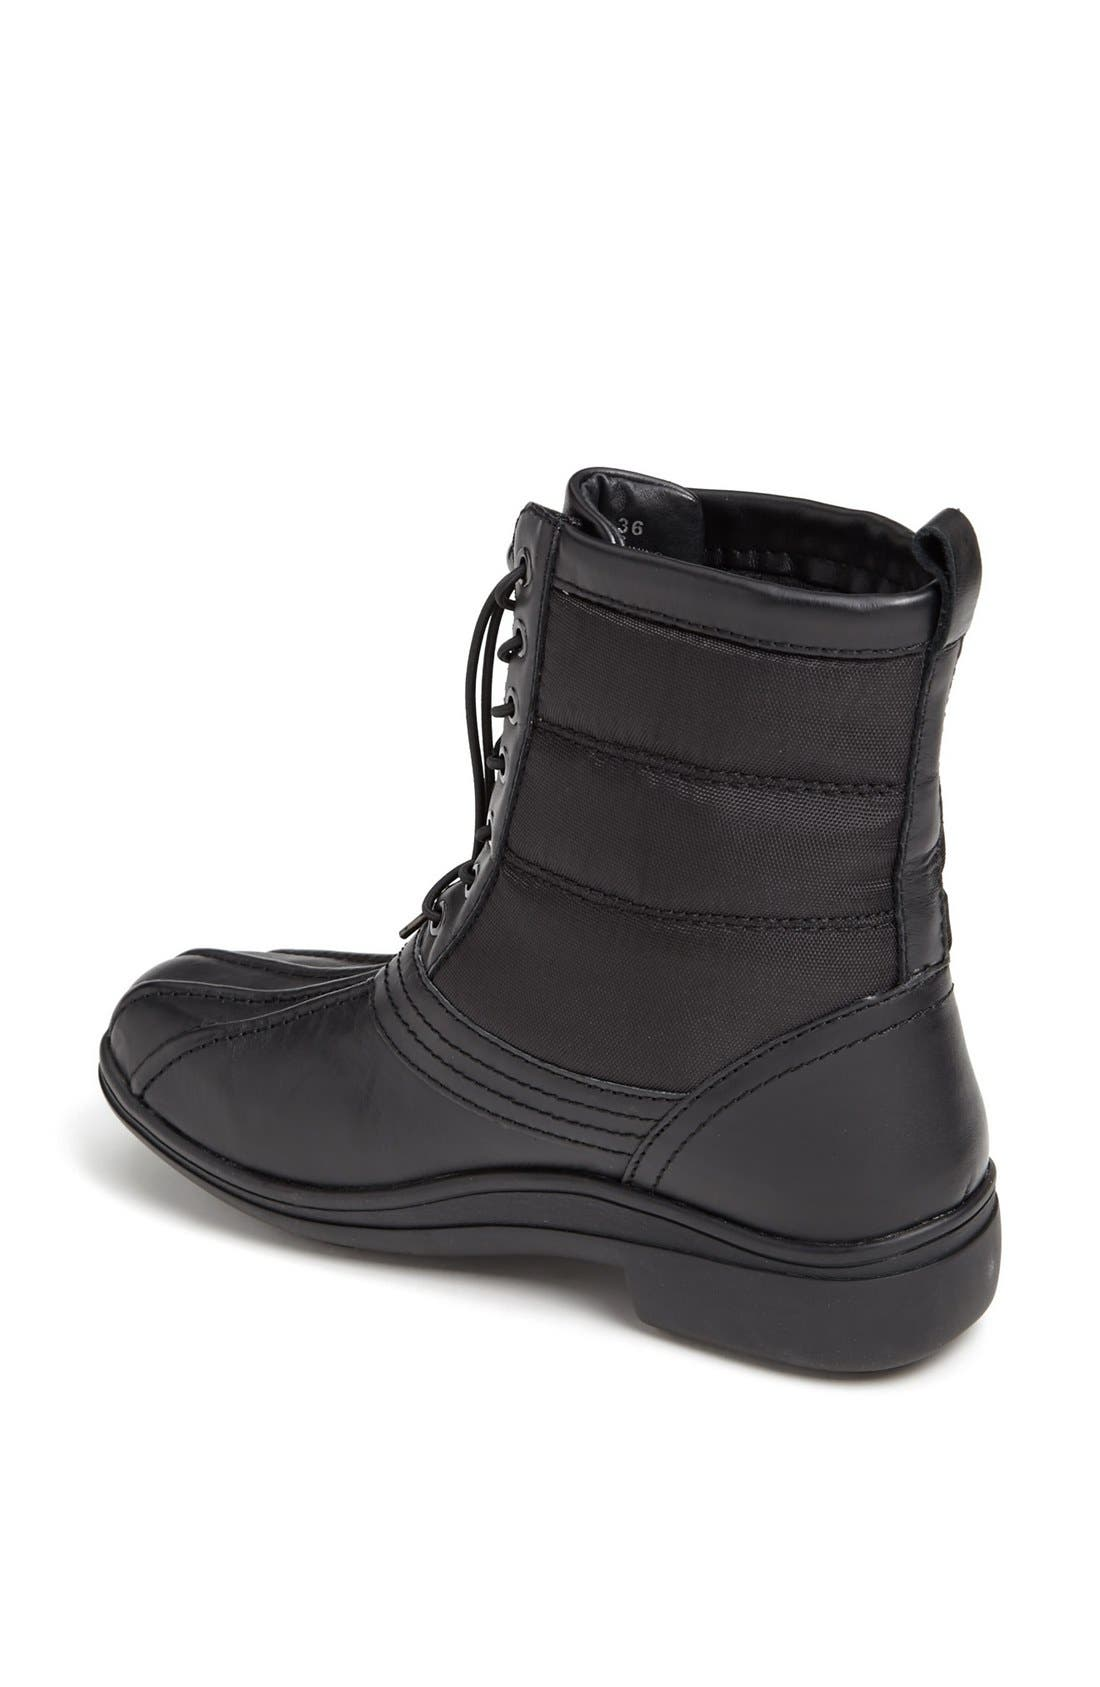 Alternate Image 2  - Alegria 'Stormy' Cold Weather Boot